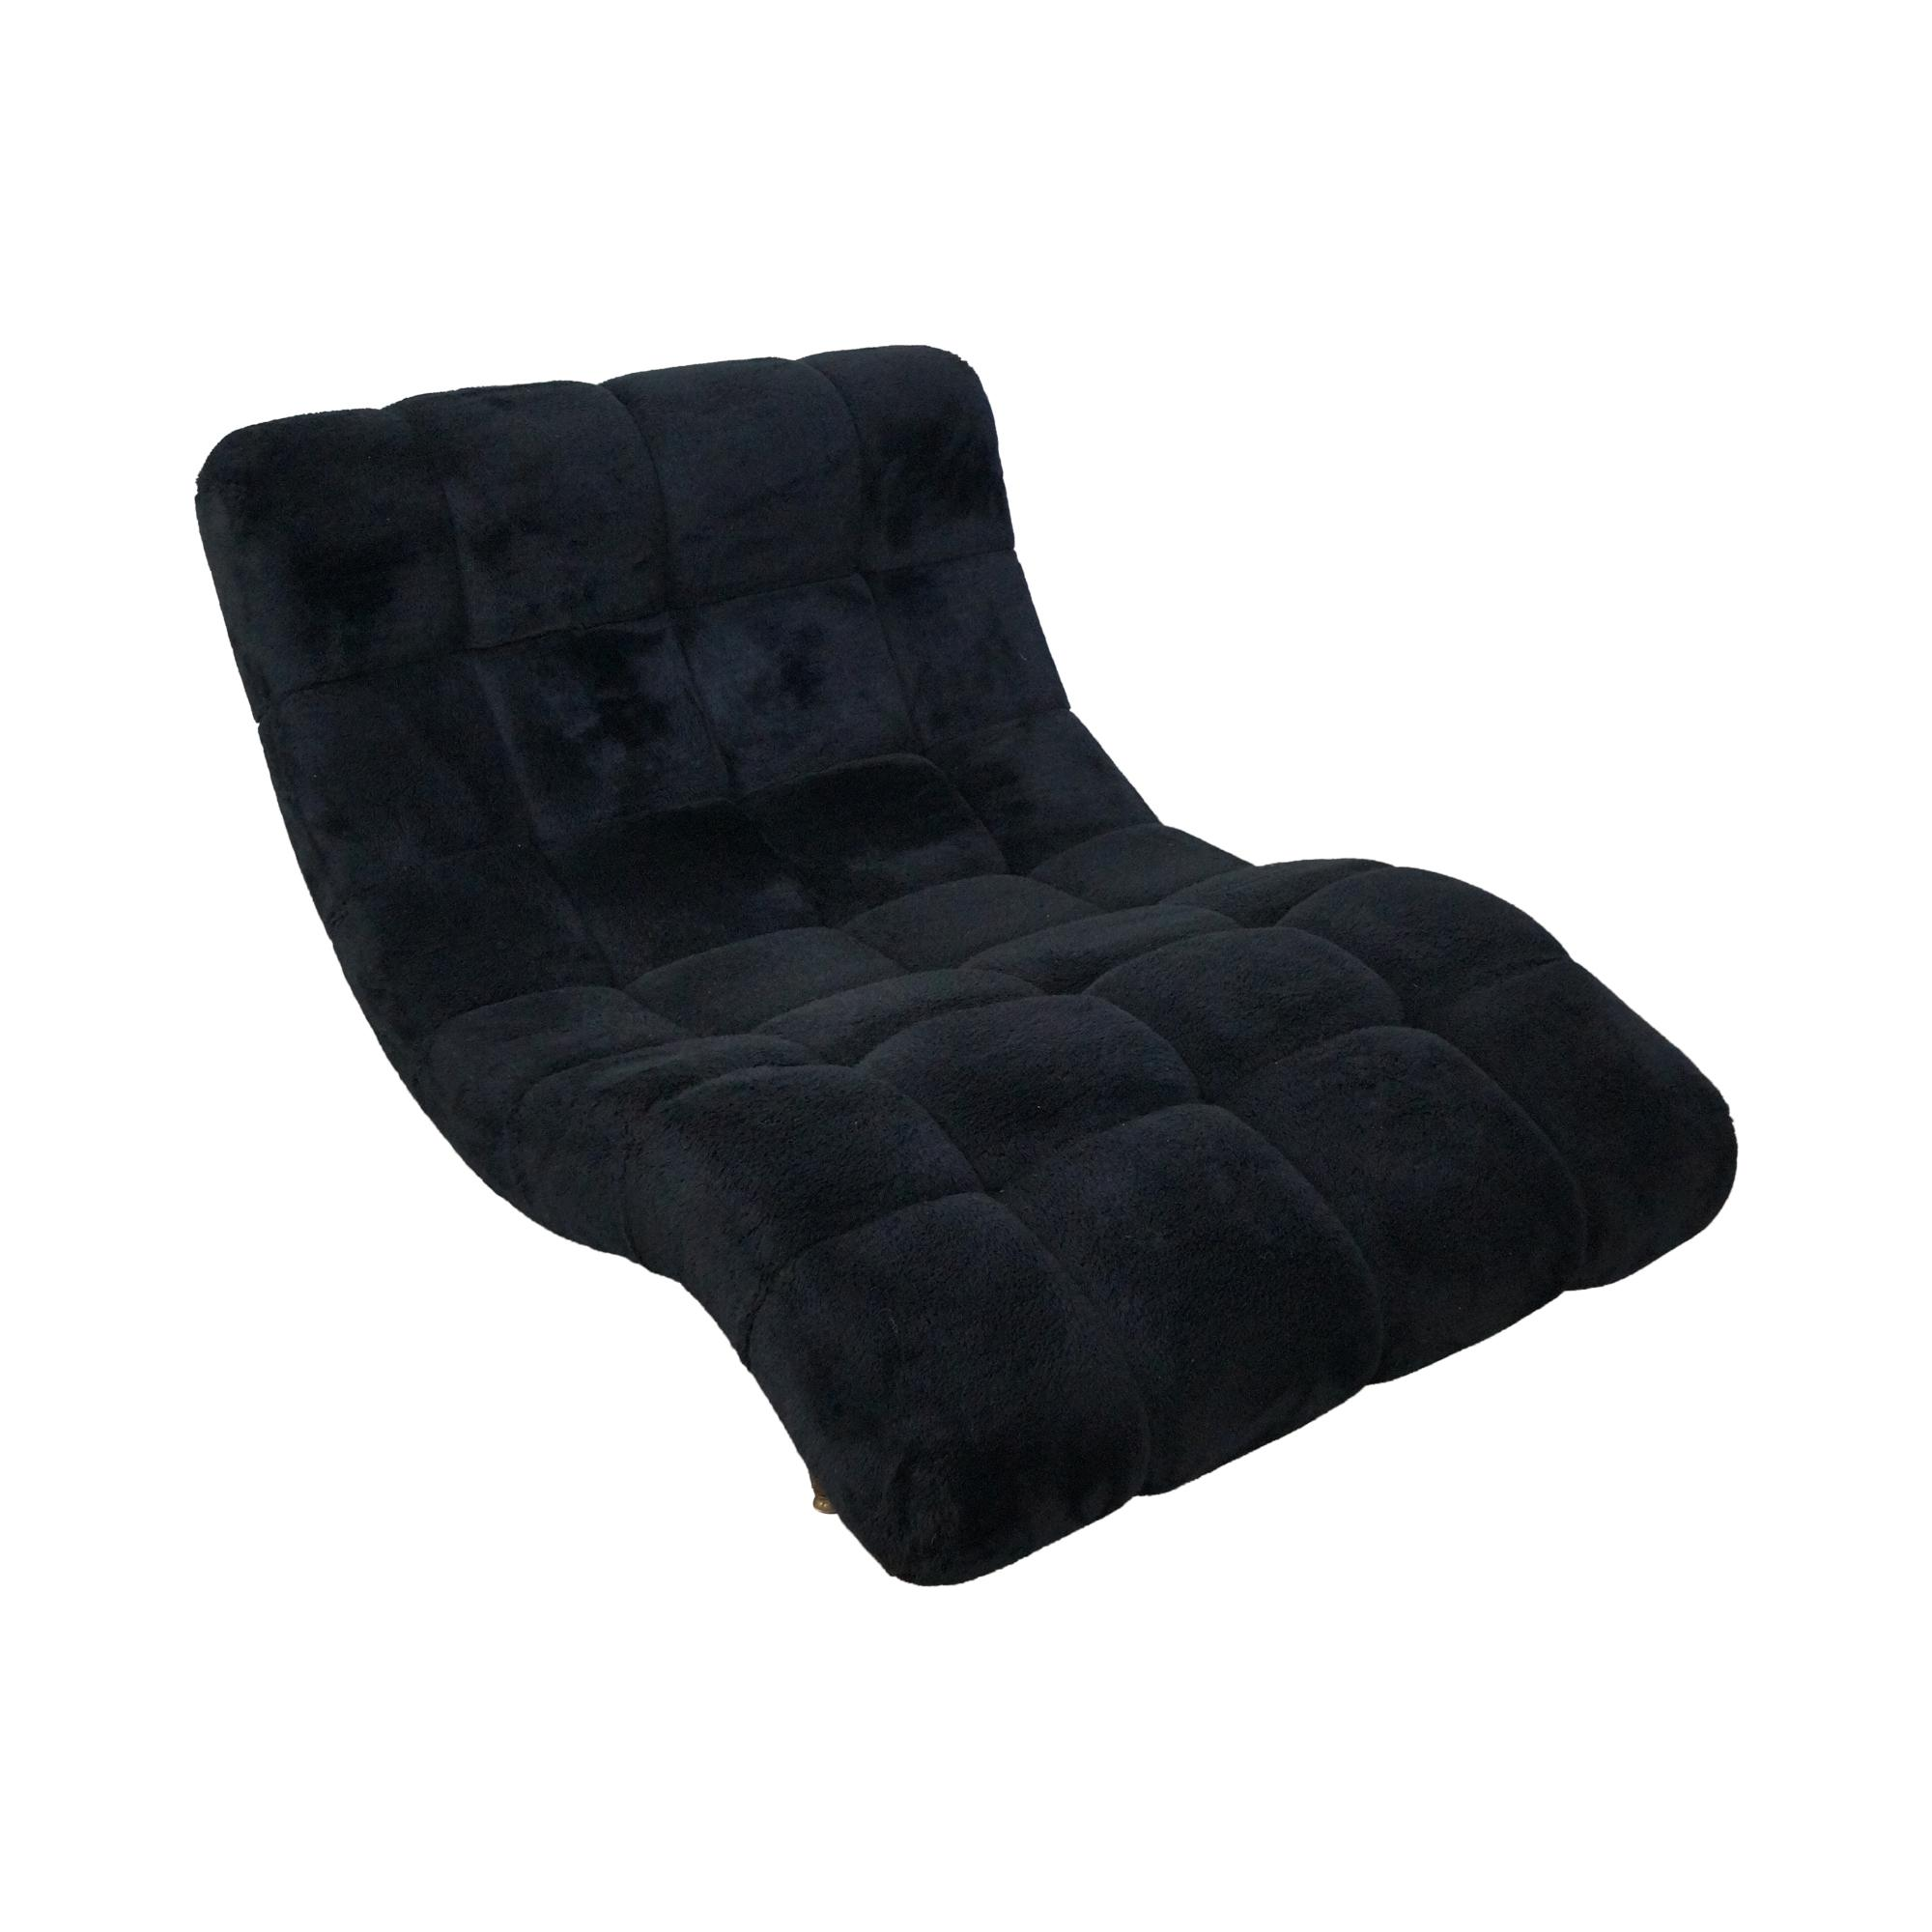 Wave chaise bed price - Image Of Adrian Pearsall Wave Chaise Lounge Chair